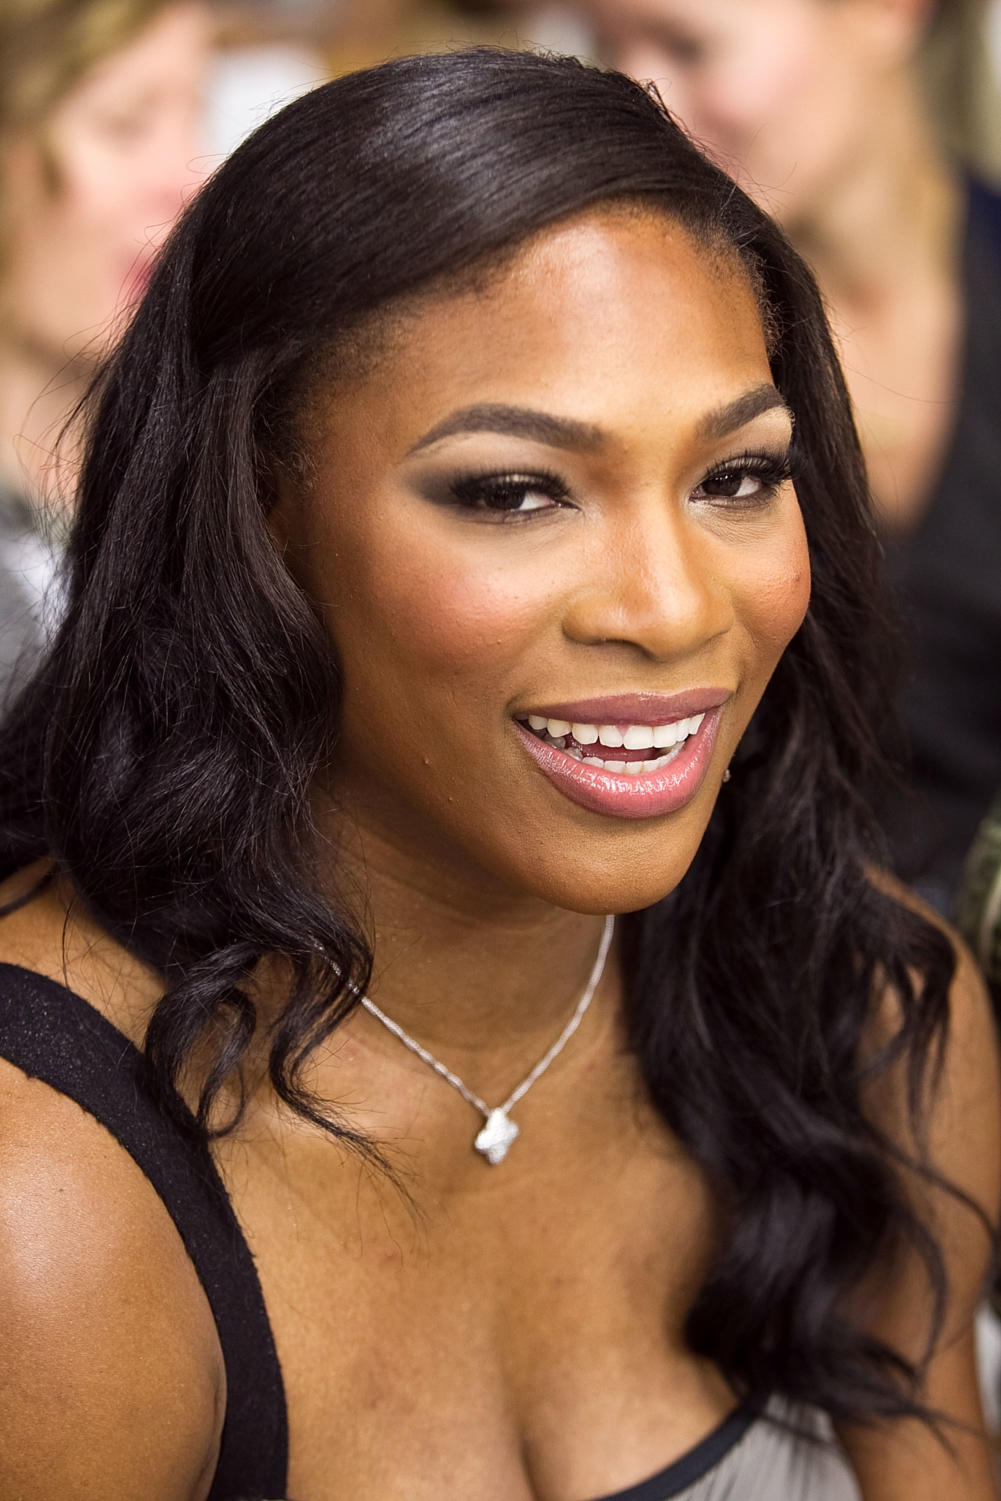 NEW YORK - SEPTEMBER 14:  Serena Williams attends the Rodarte Spring 2011 fashion show during Mercedes-Benz Fashion Week on September 14, 2010 in New York City.  (Photo by Paul Morigi/WireImage)